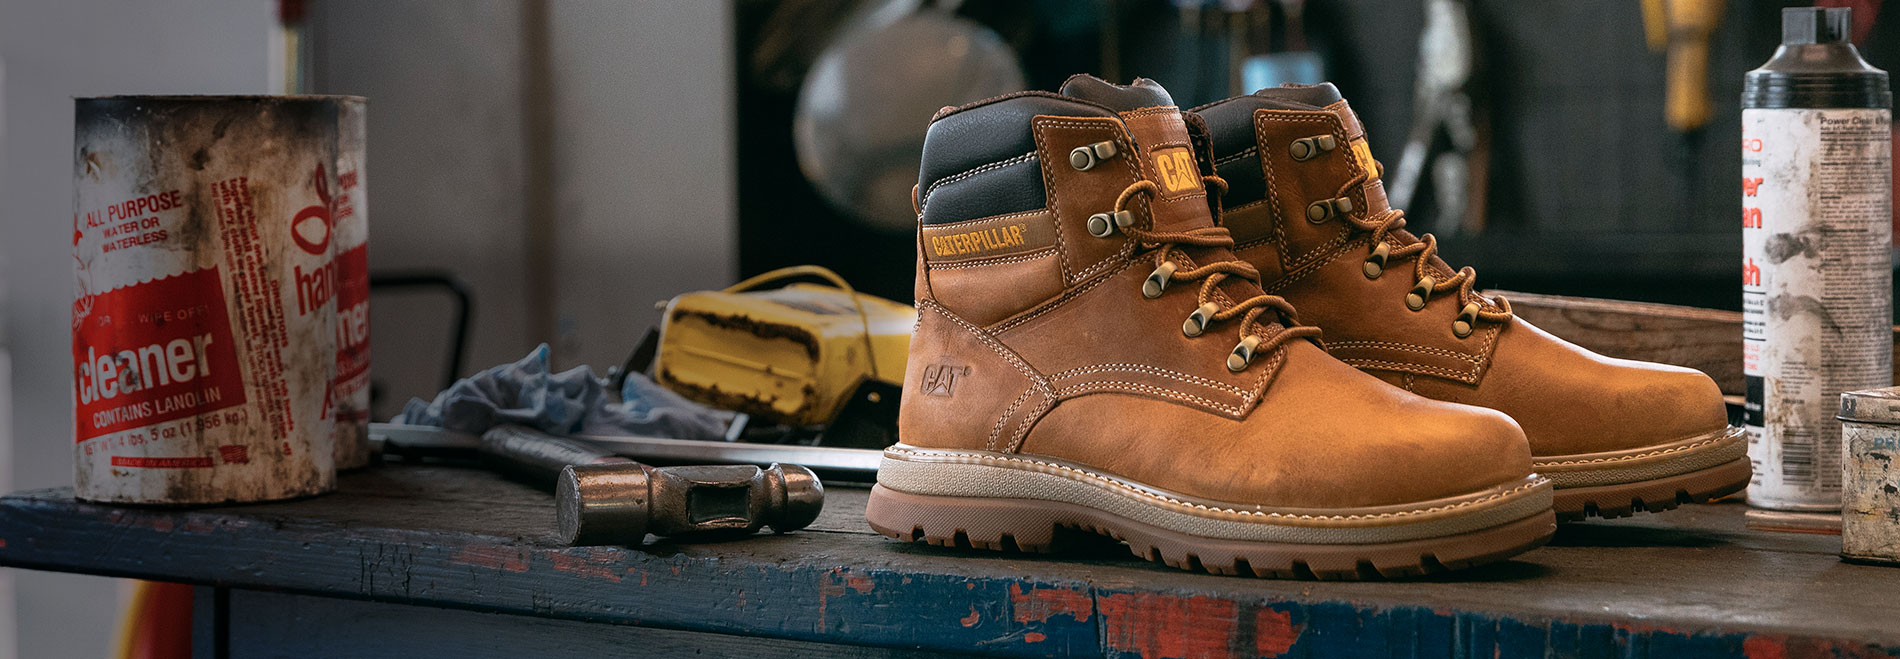 6c6d24f437c Caterpillar Work Boots - Comfortable Work Shoes | CAT Footwear